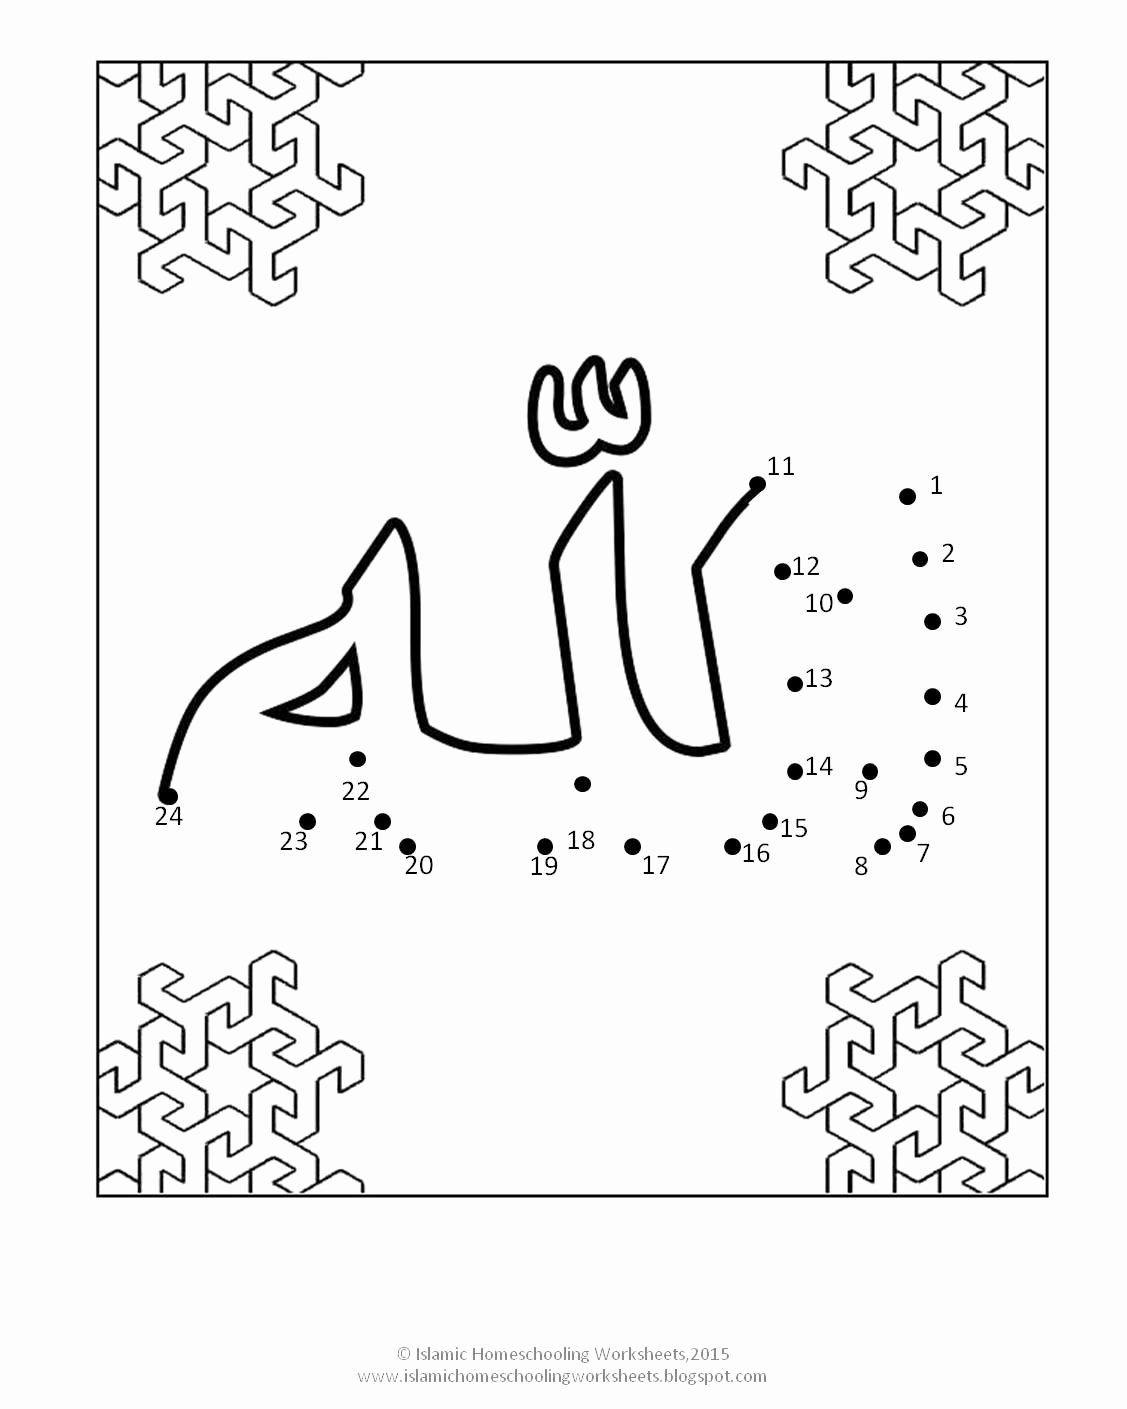 Islamic Worksheets for Preschoolers Kids islamic Homeschooling Malaysia